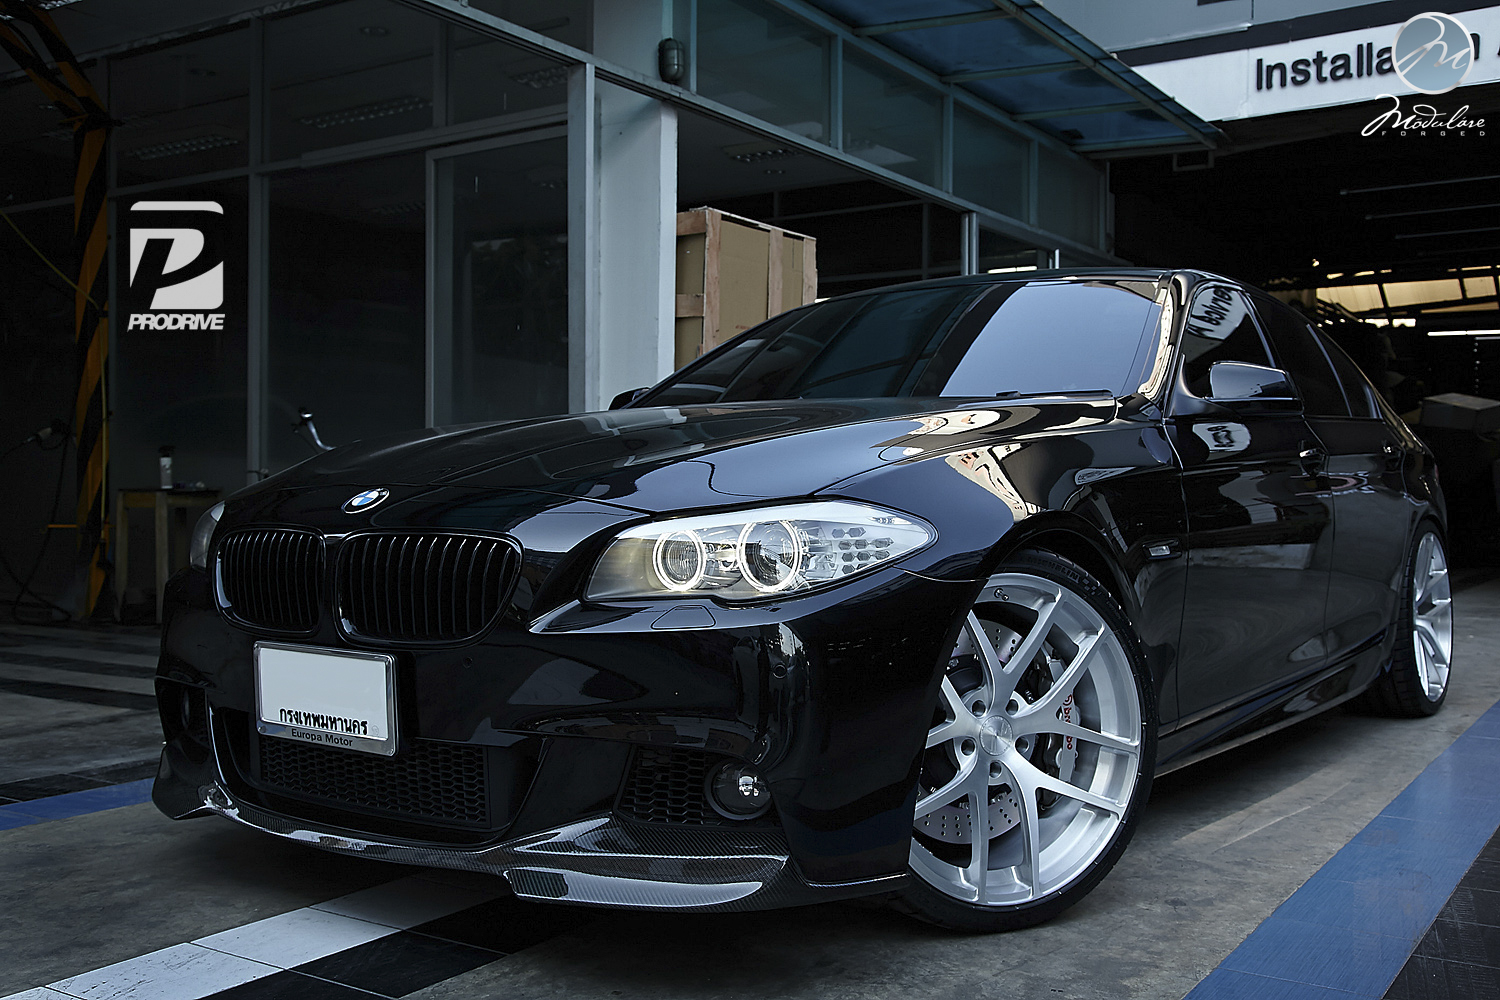 bmw f10 550i has modulare wheels in bangkok autoevolution. Black Bedroom Furniture Sets. Home Design Ideas